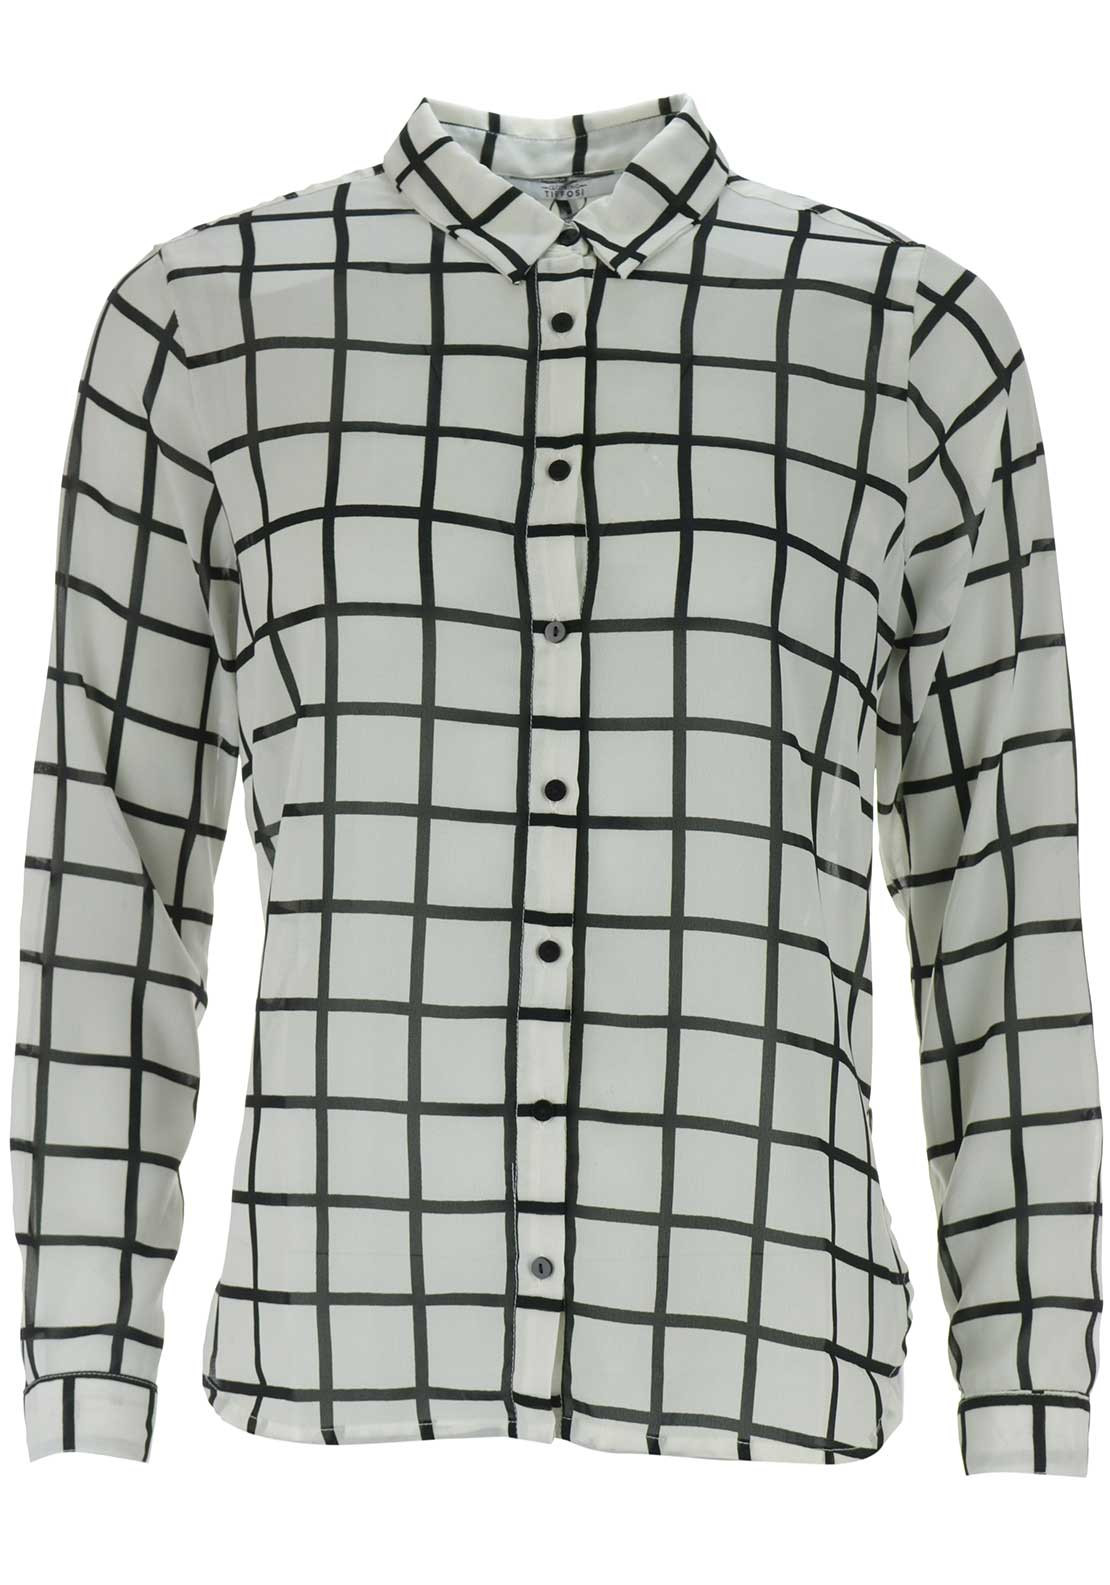 Tiffosi Womens Wendy Grid Shirt, White